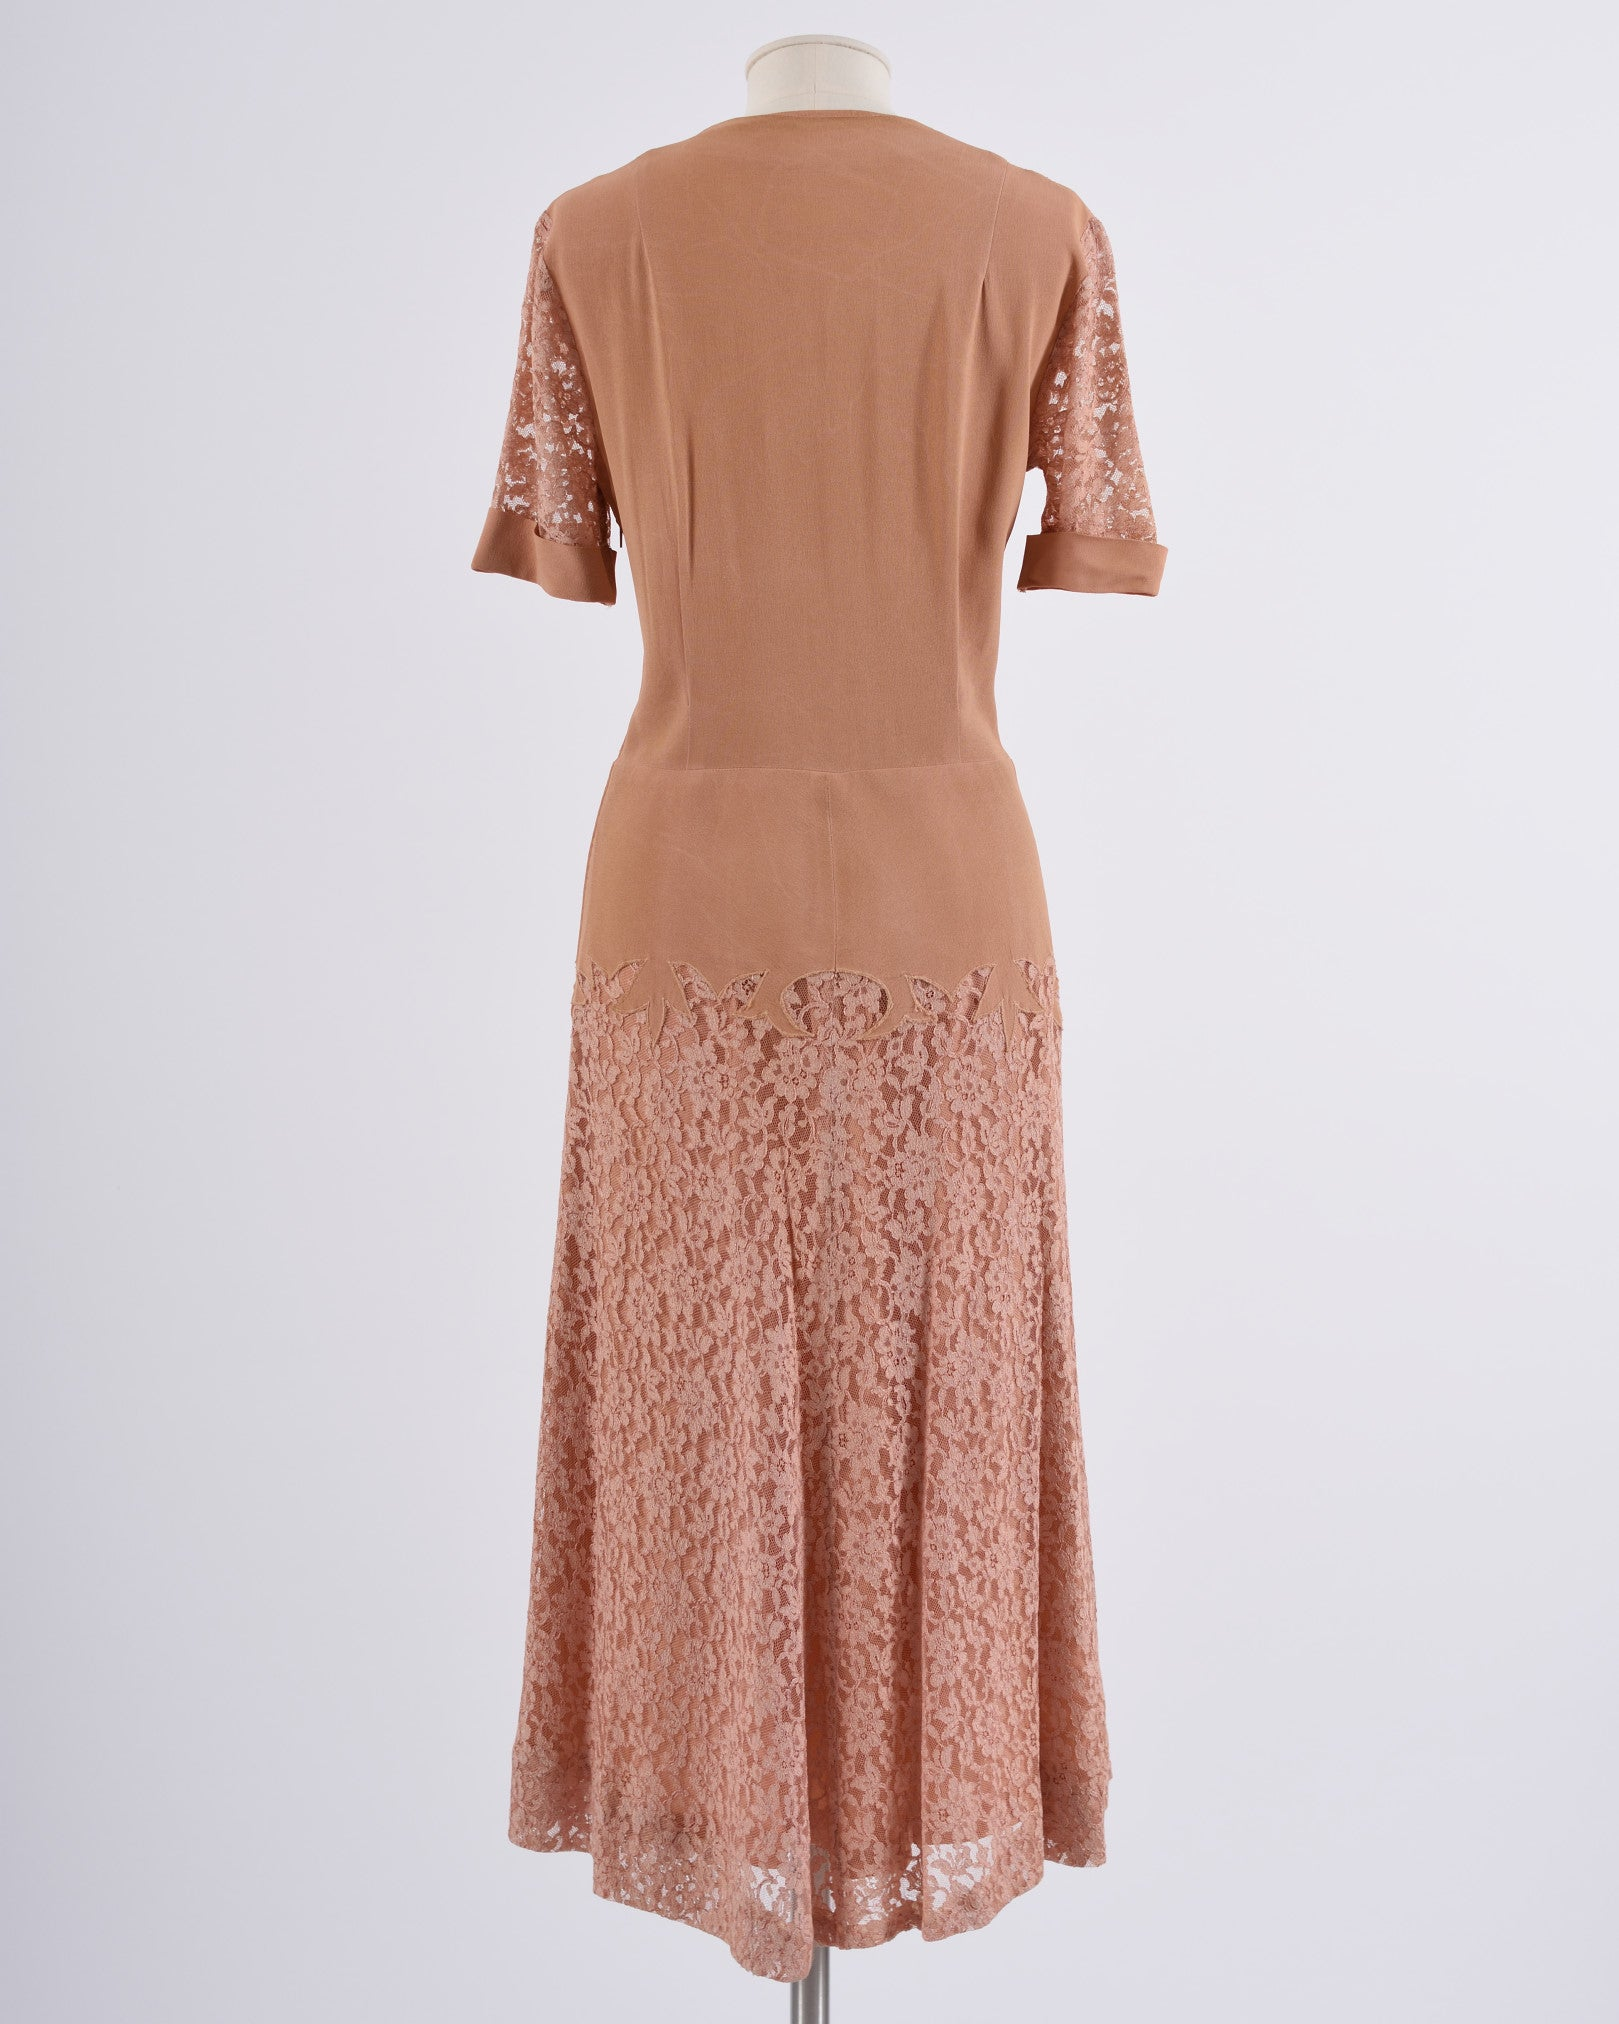 FOREVER YOUNG BY PURITAN 1950s Nude Lace Dress